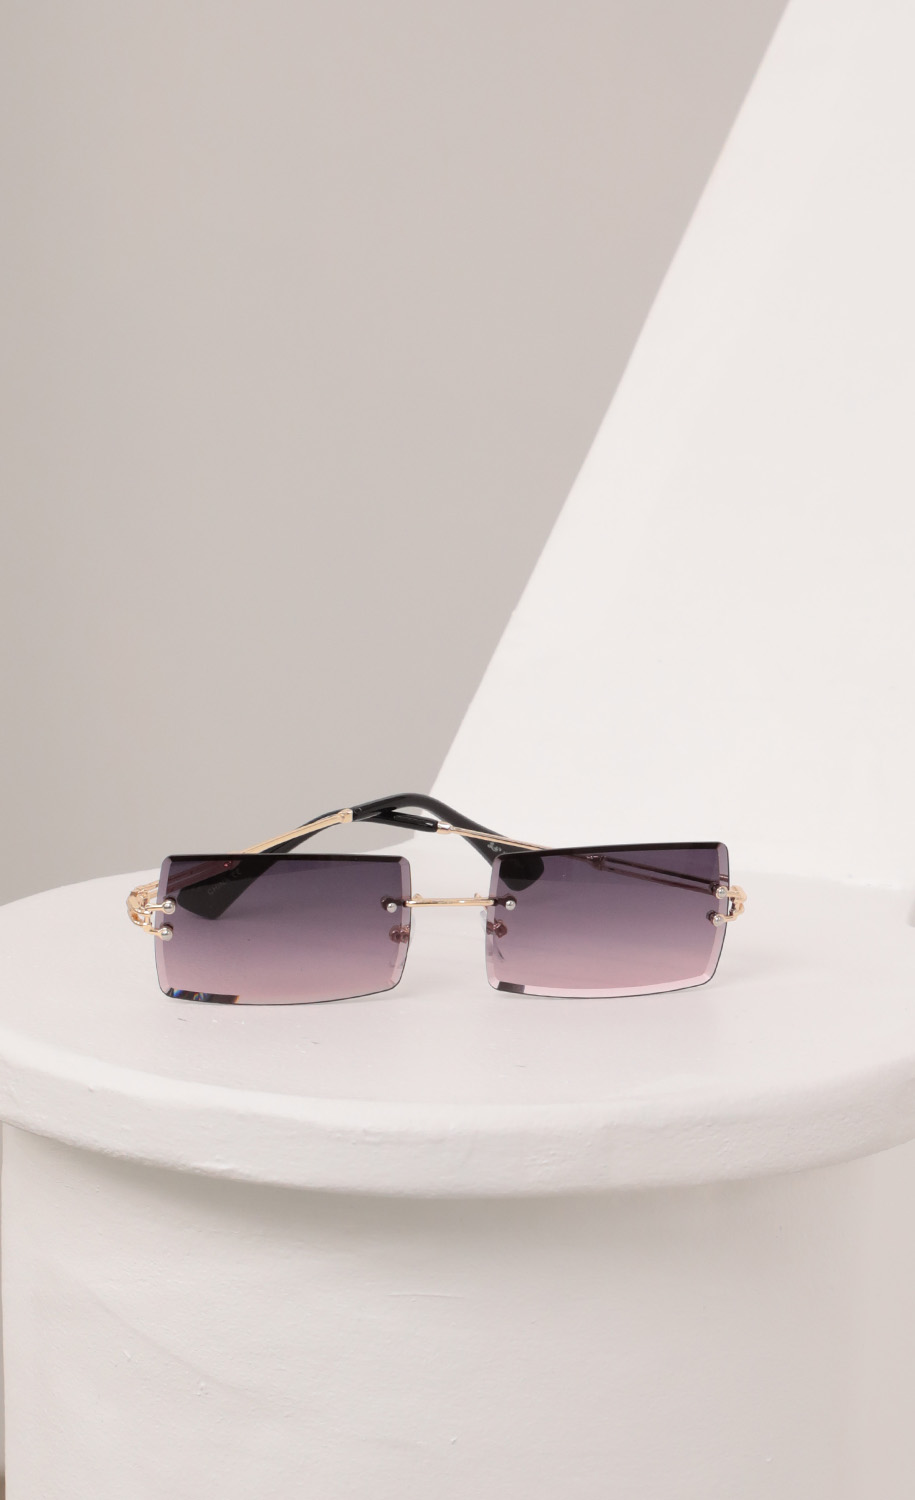 90s Baby Rectangle Sunglasses in Purple Ombre